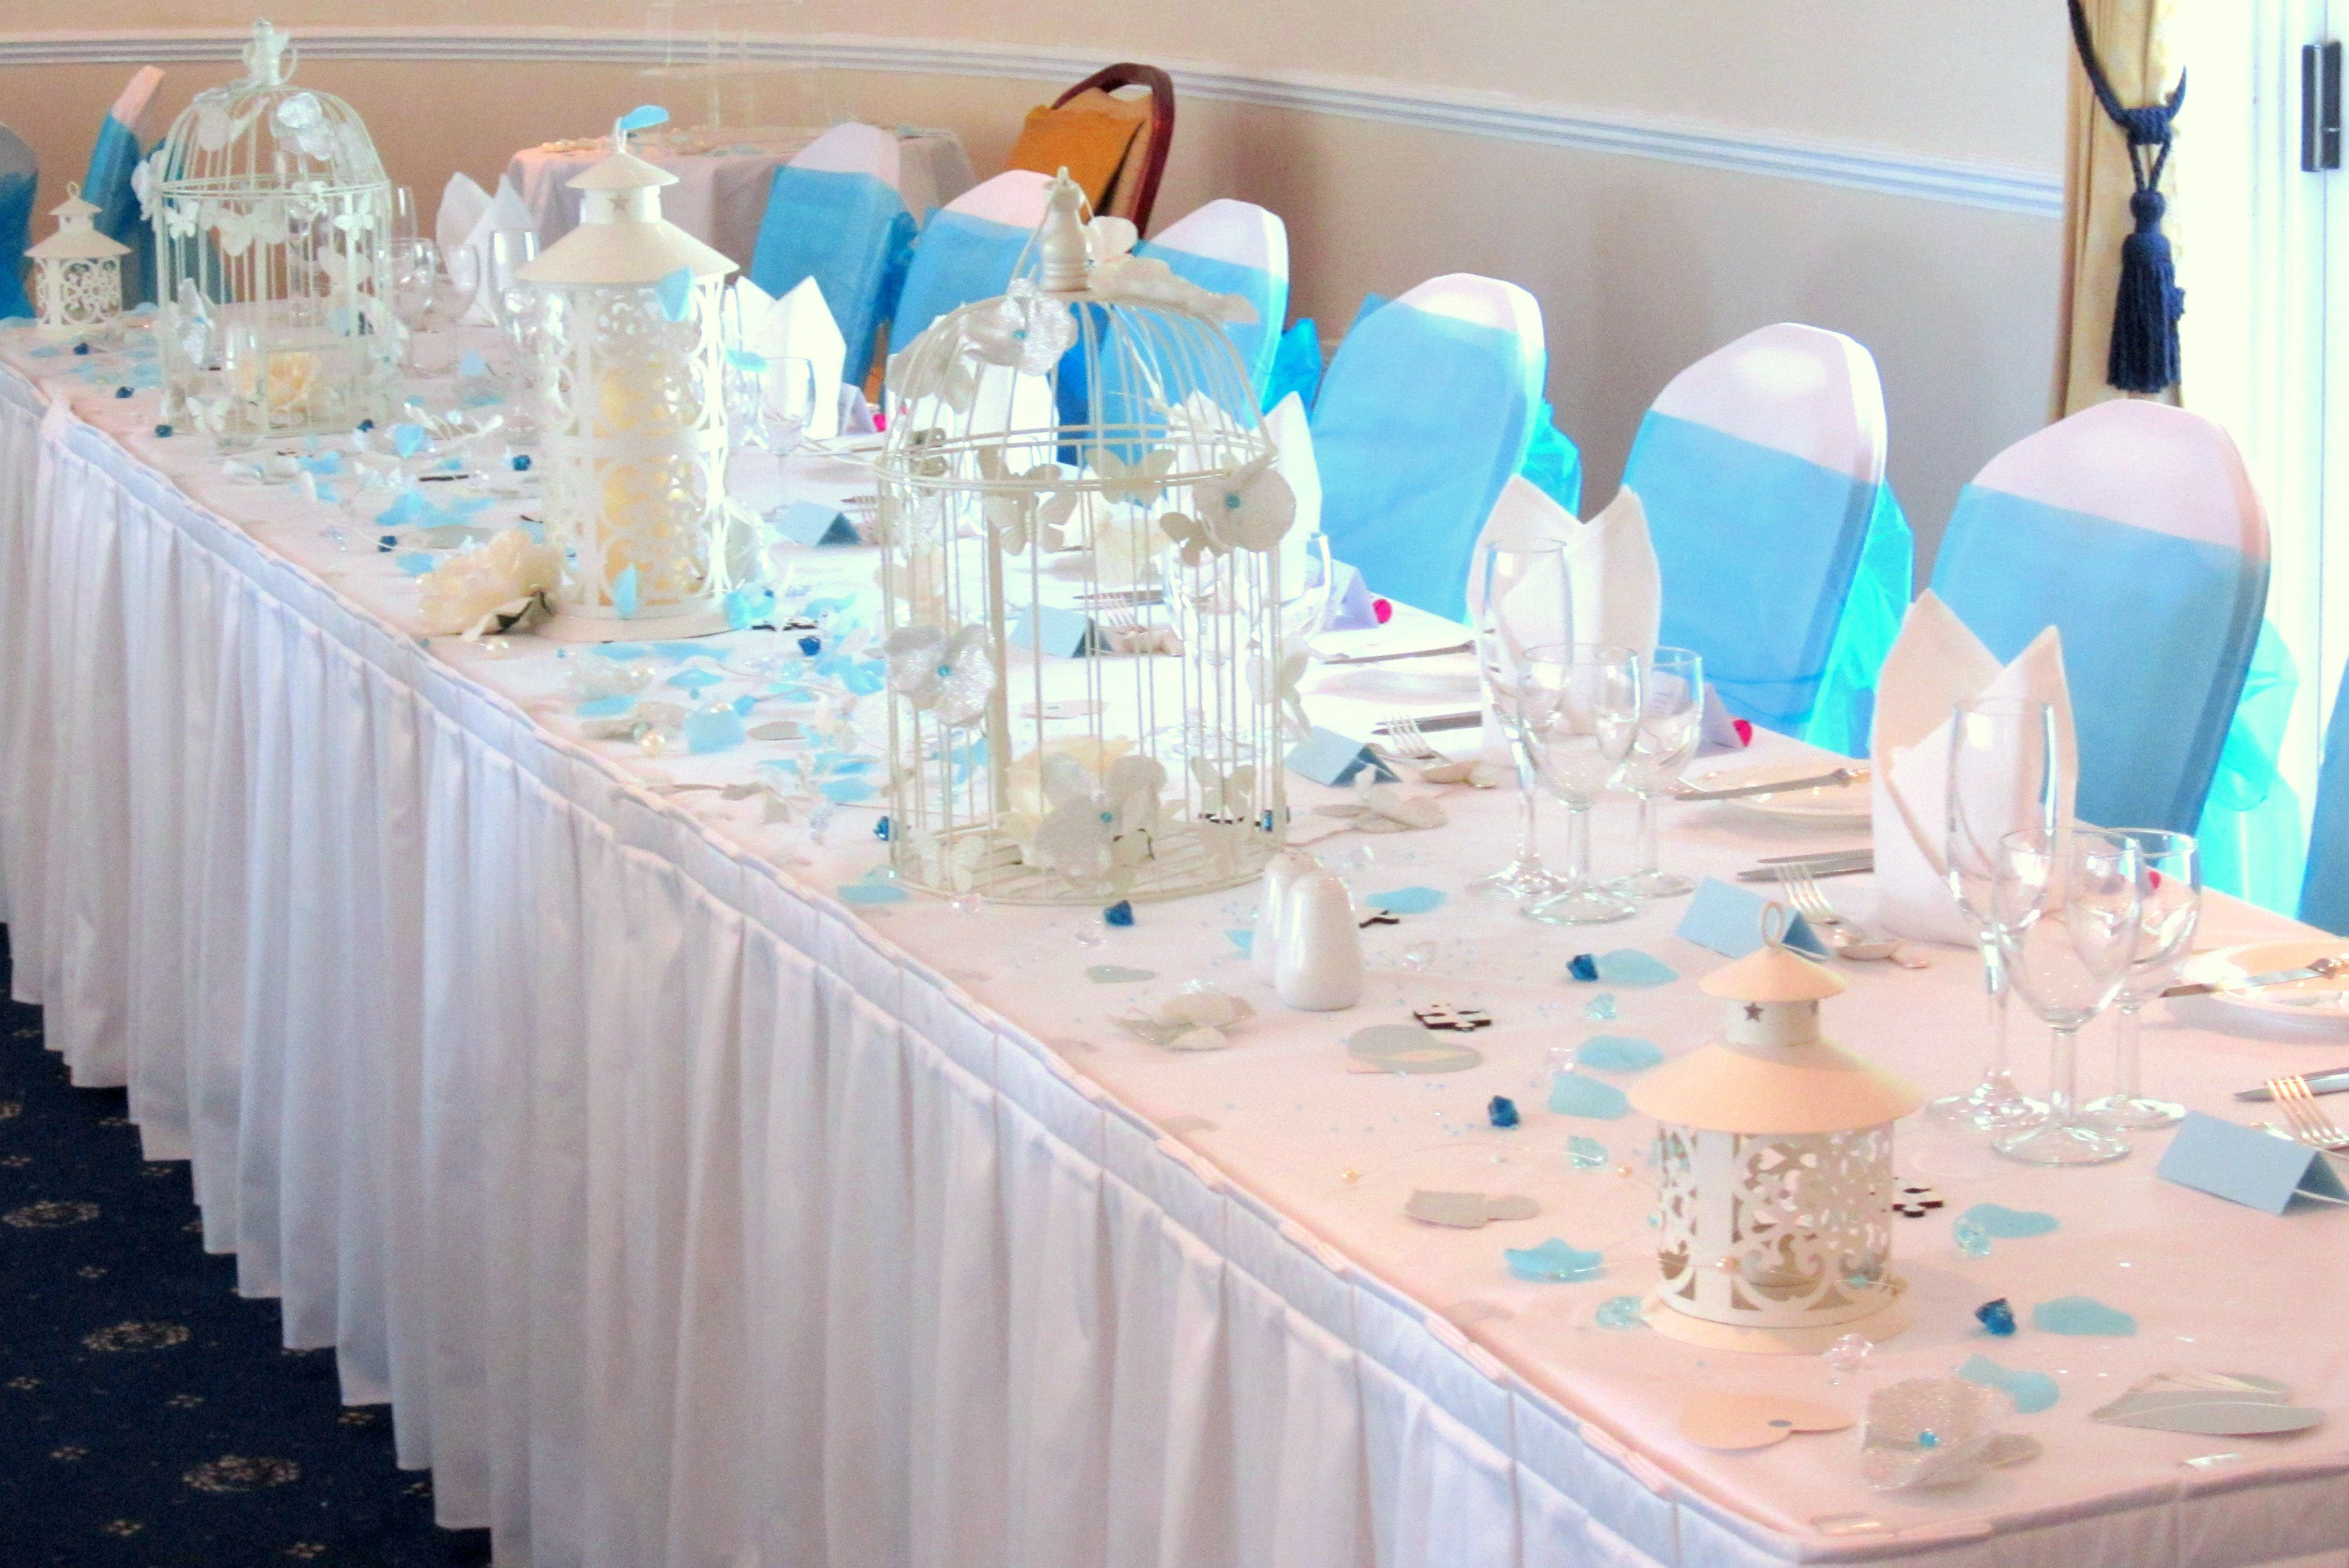 Sky Blue Theme Wedding Bird Cages Available For Lease Hire Via Http